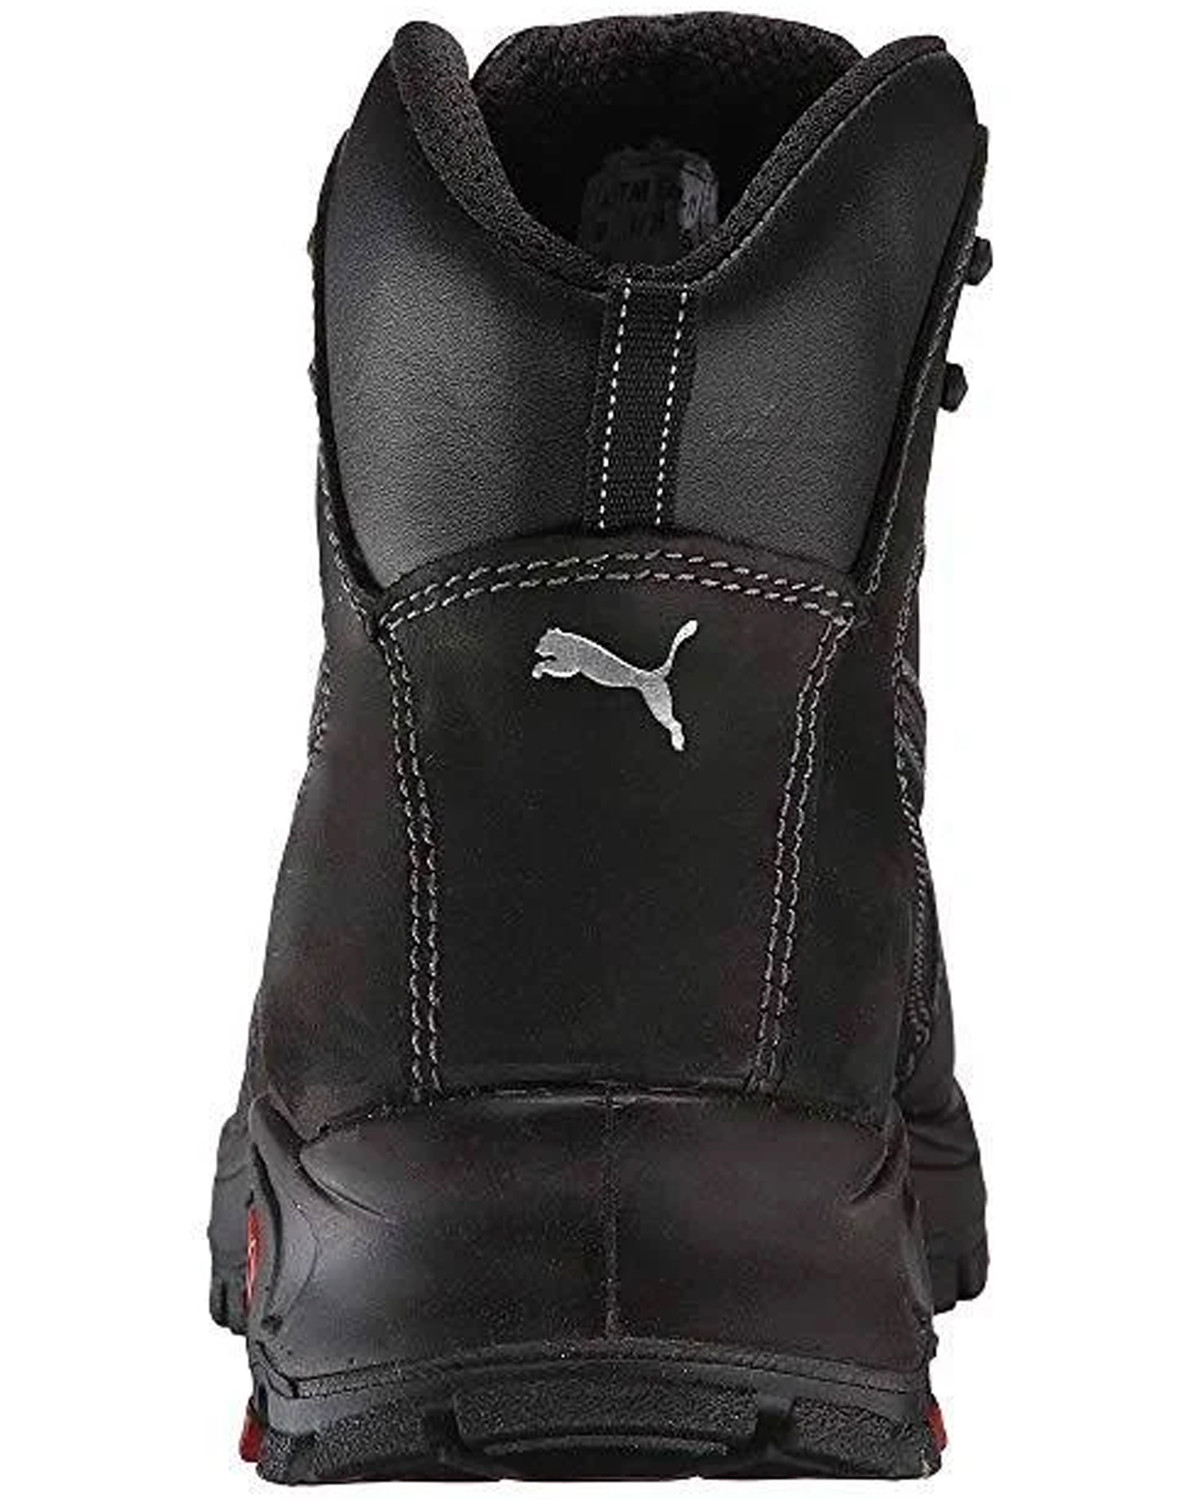 Puma Men s Cascade Safety Shoes - Composite Toe - Country Outfitter a503d4bb0